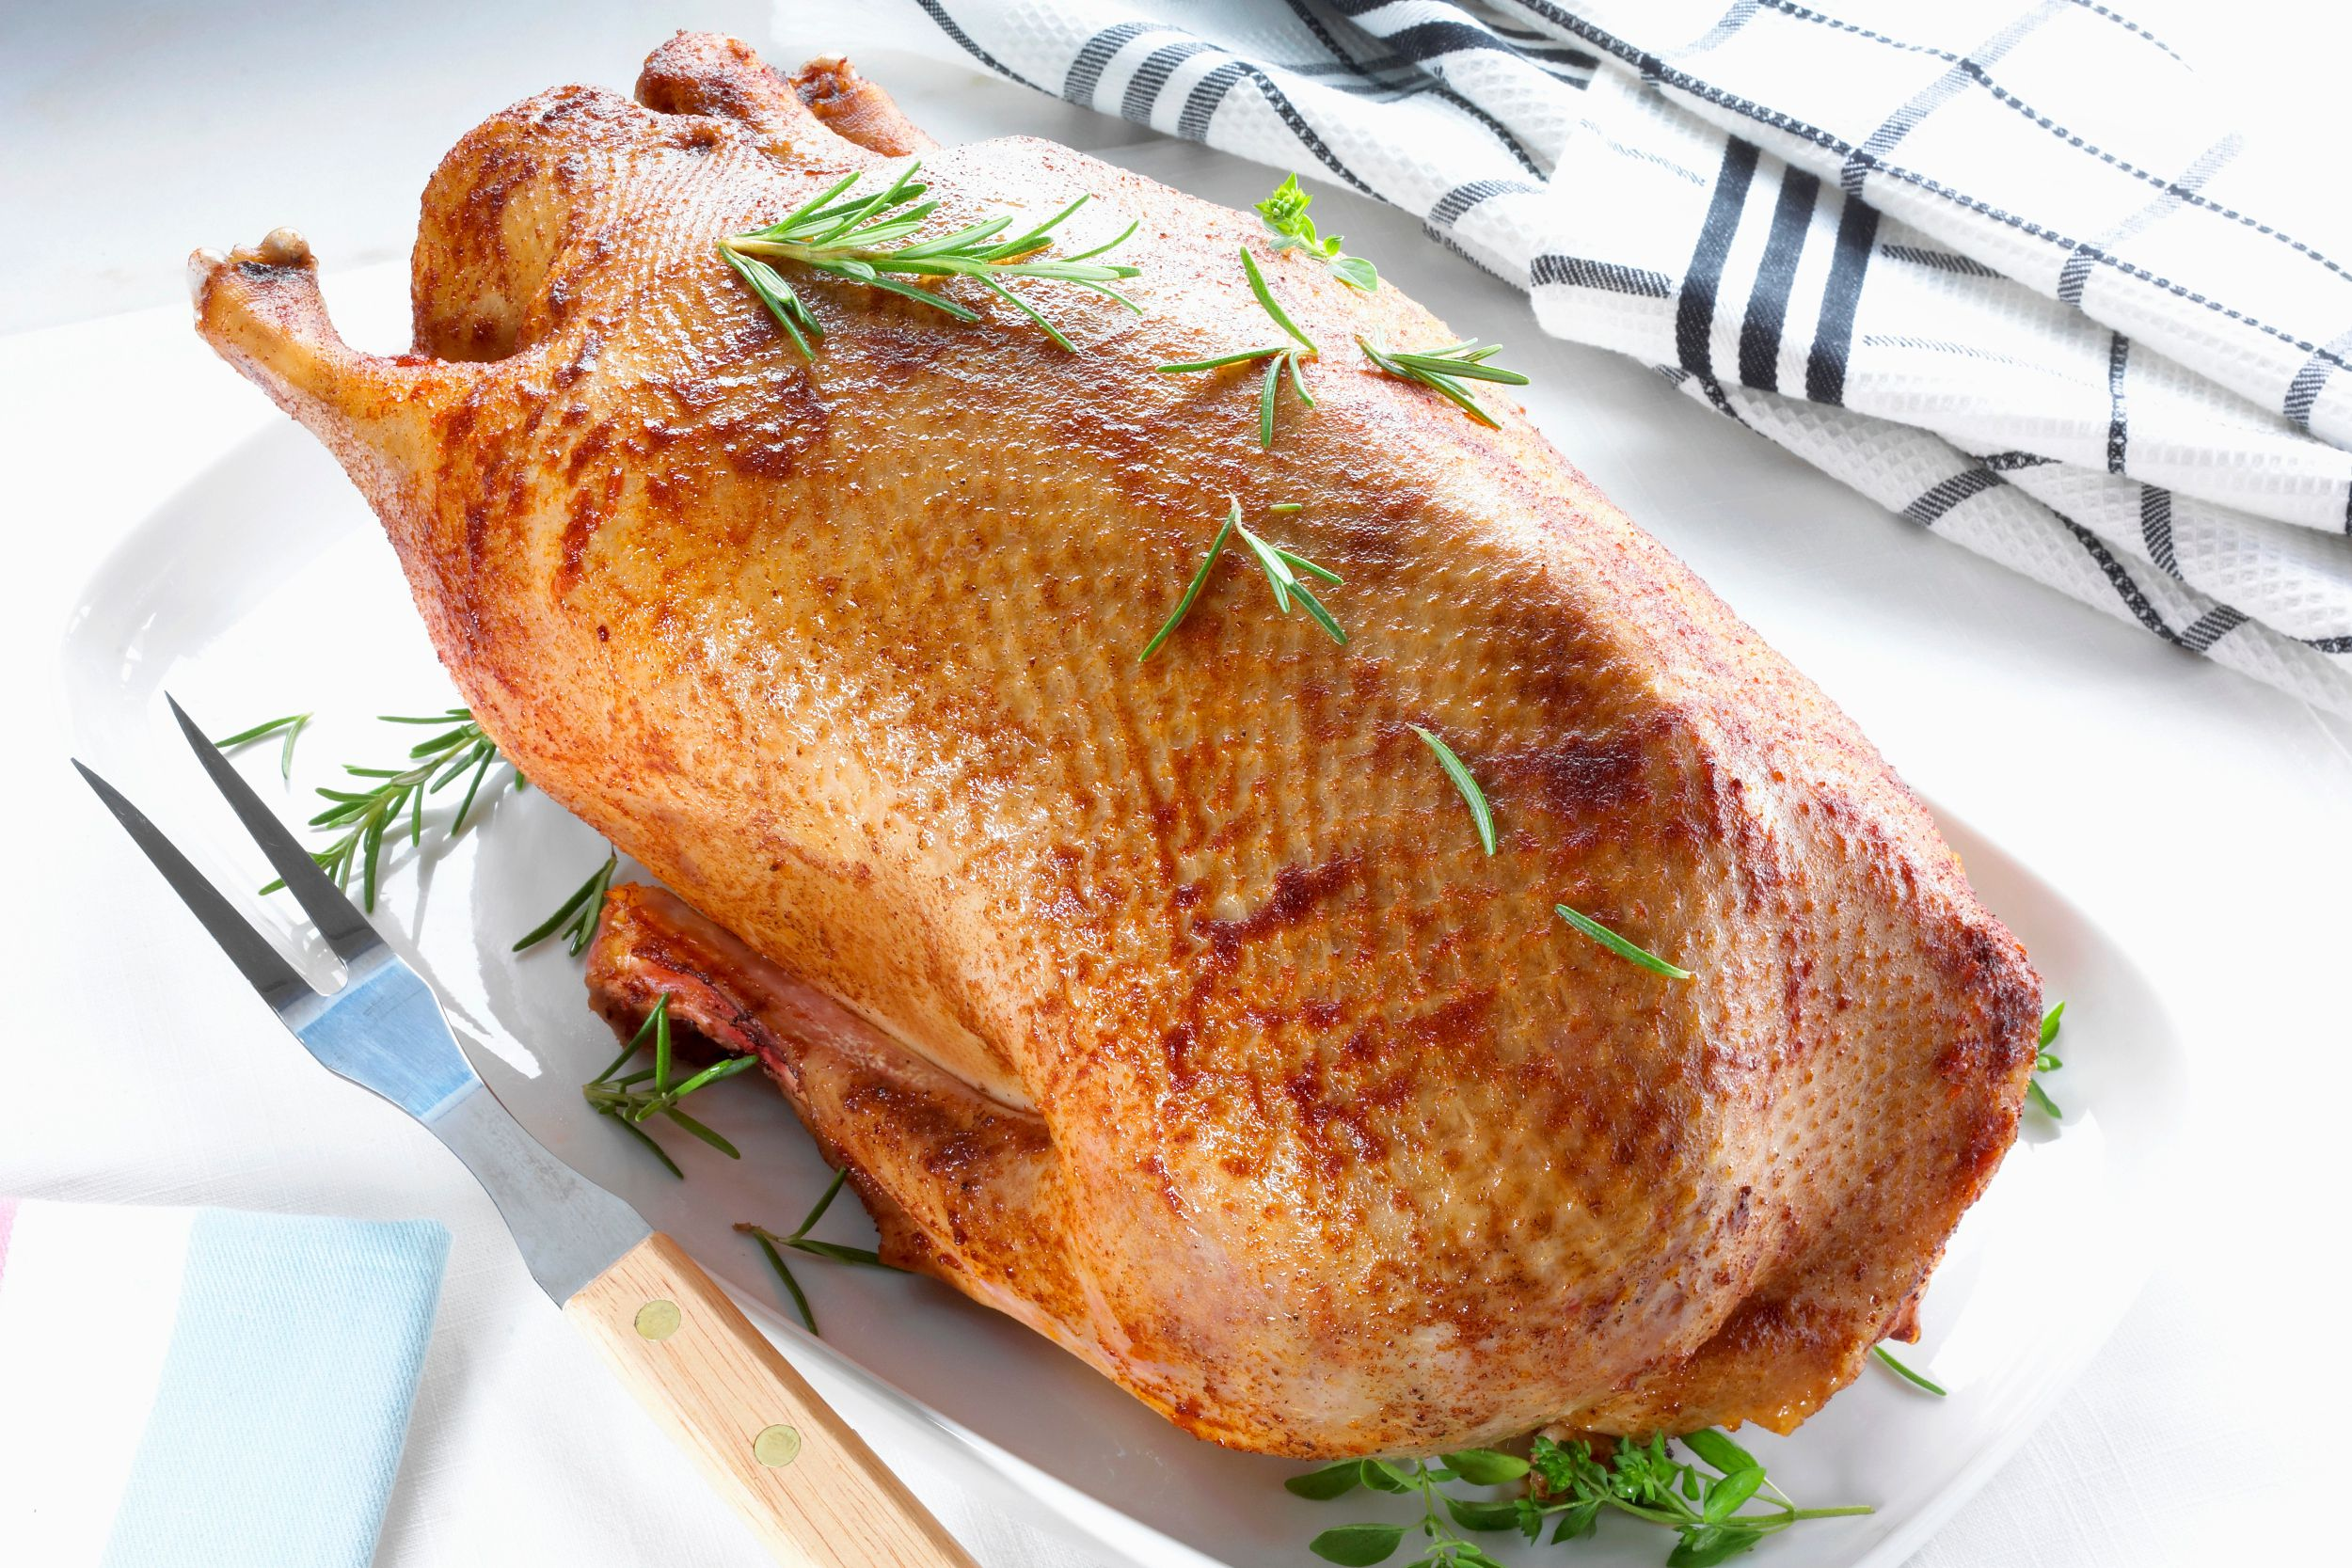 Go Ahead and Roast a Goose: You KNOW You Want To